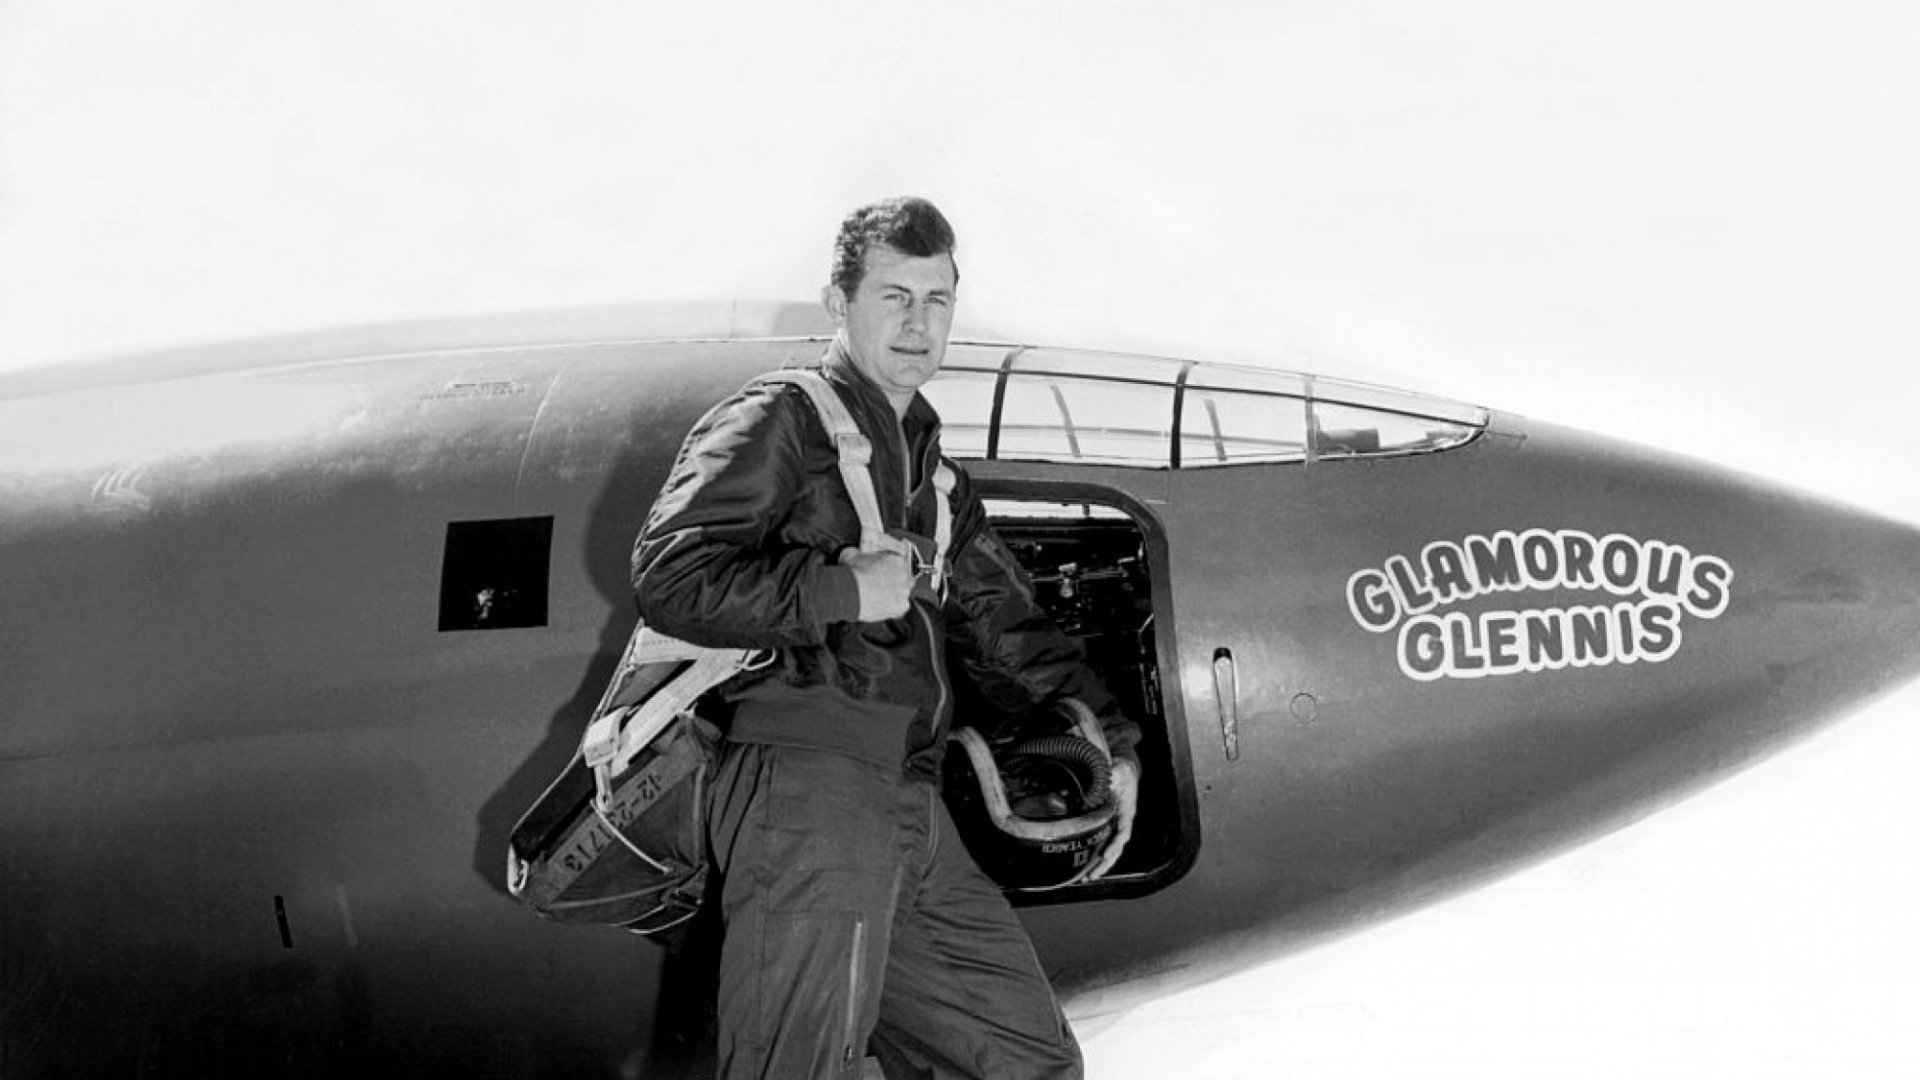 Chuck Yeager Was an Exceptional Pilot (and American), But His Legacy Can Actually Be Summed Up in 4 Words